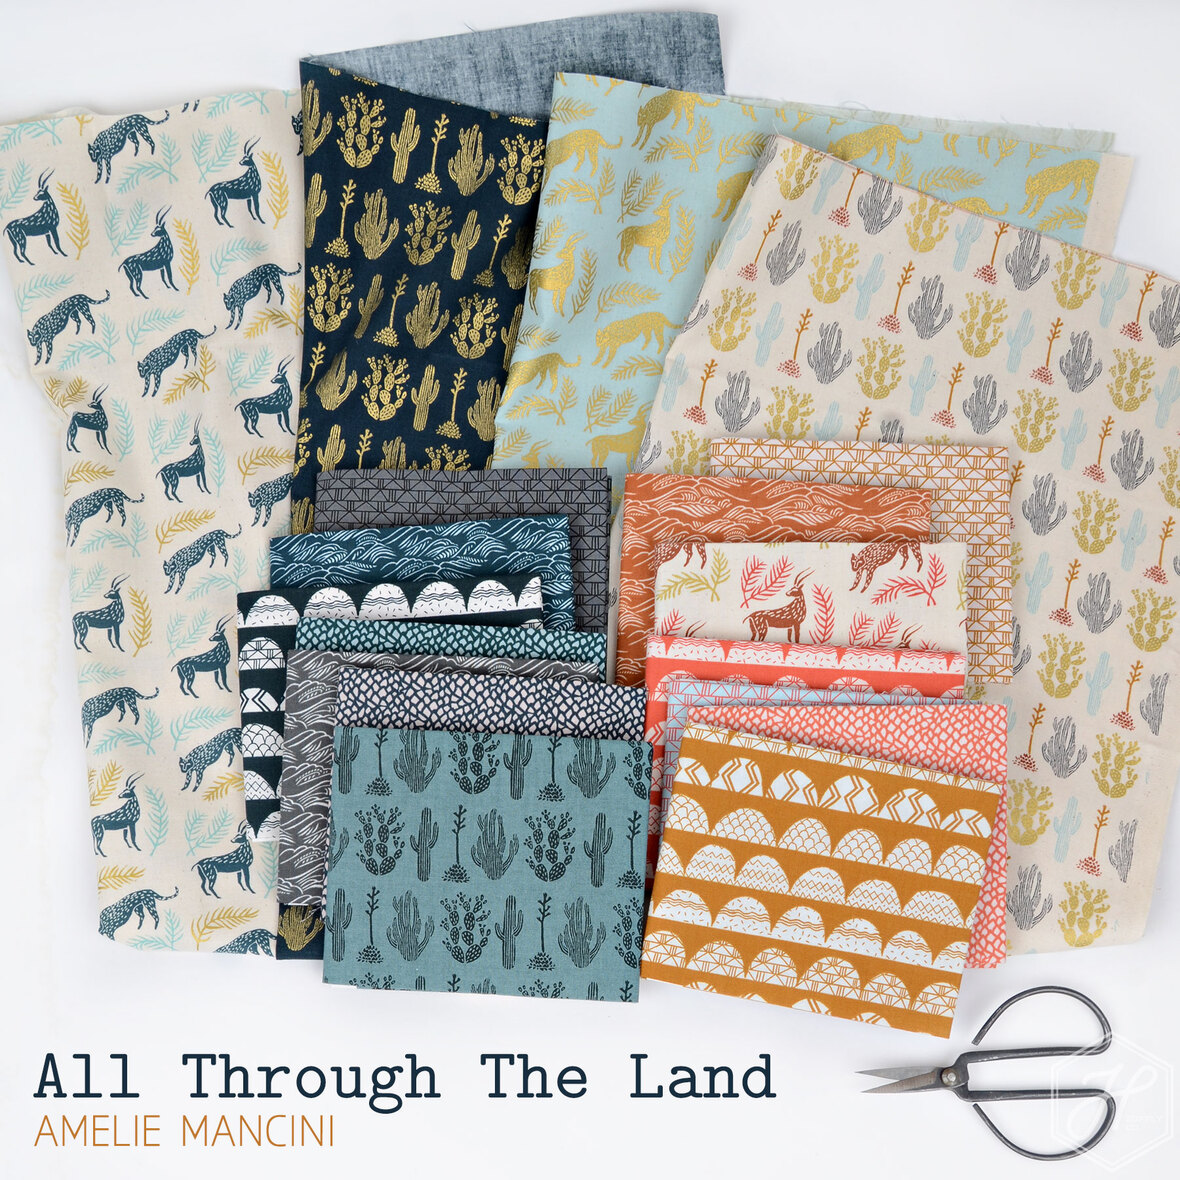 All-through-the-Land-Fabric-Amelie-Mancini-for-Cotton-and-Steel-at-Hawthorne-Supply-Co